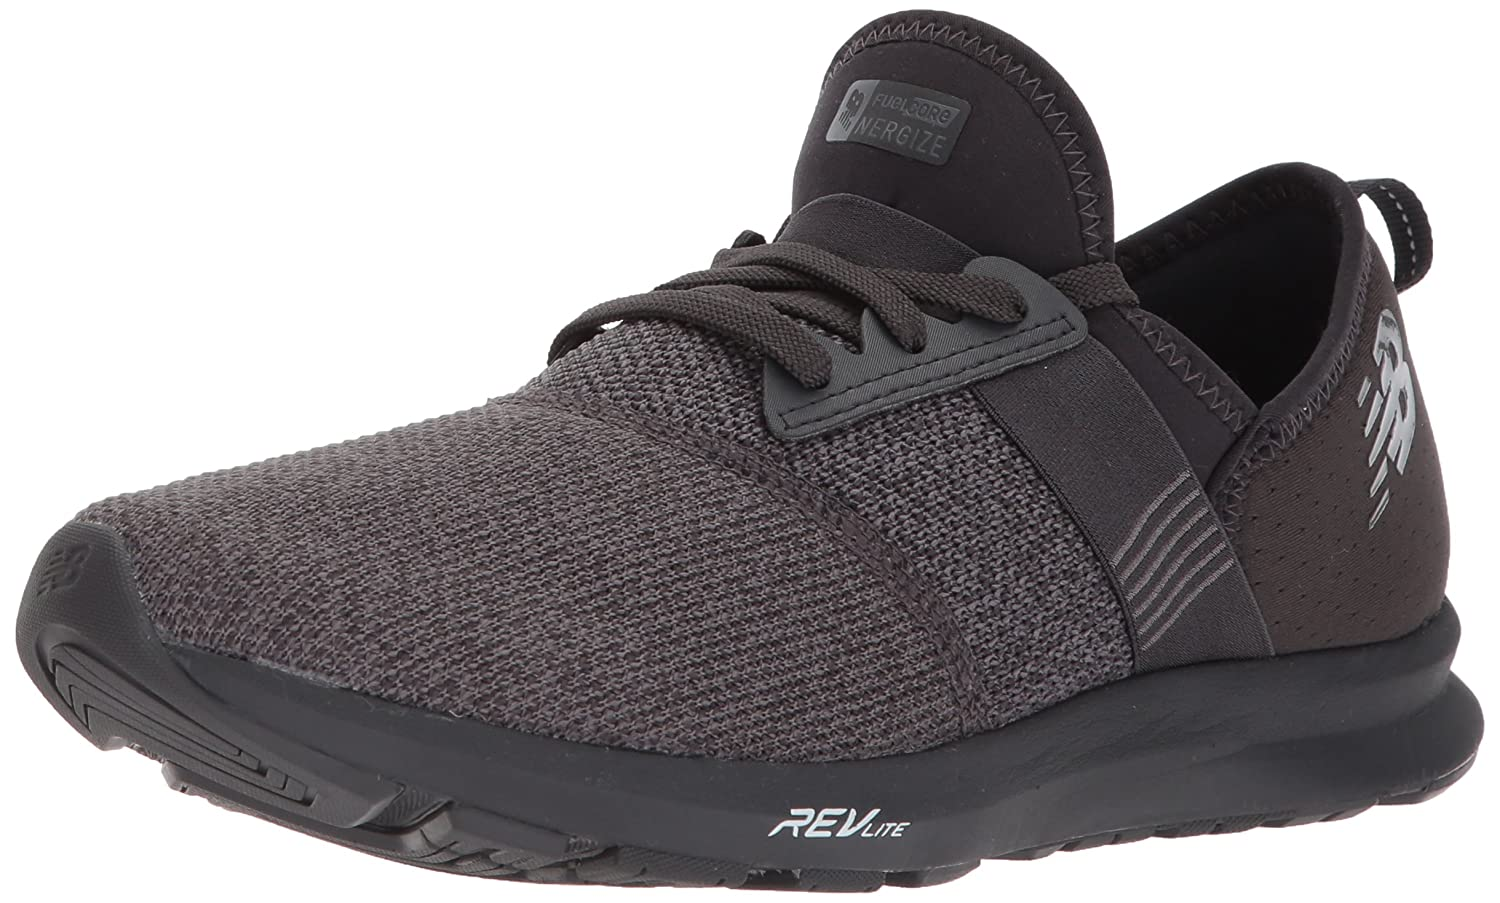 New Balance Women's Nergize V1 FuelCore Cross Trainer B06XXDG93X 9.5 B(M) US|Black